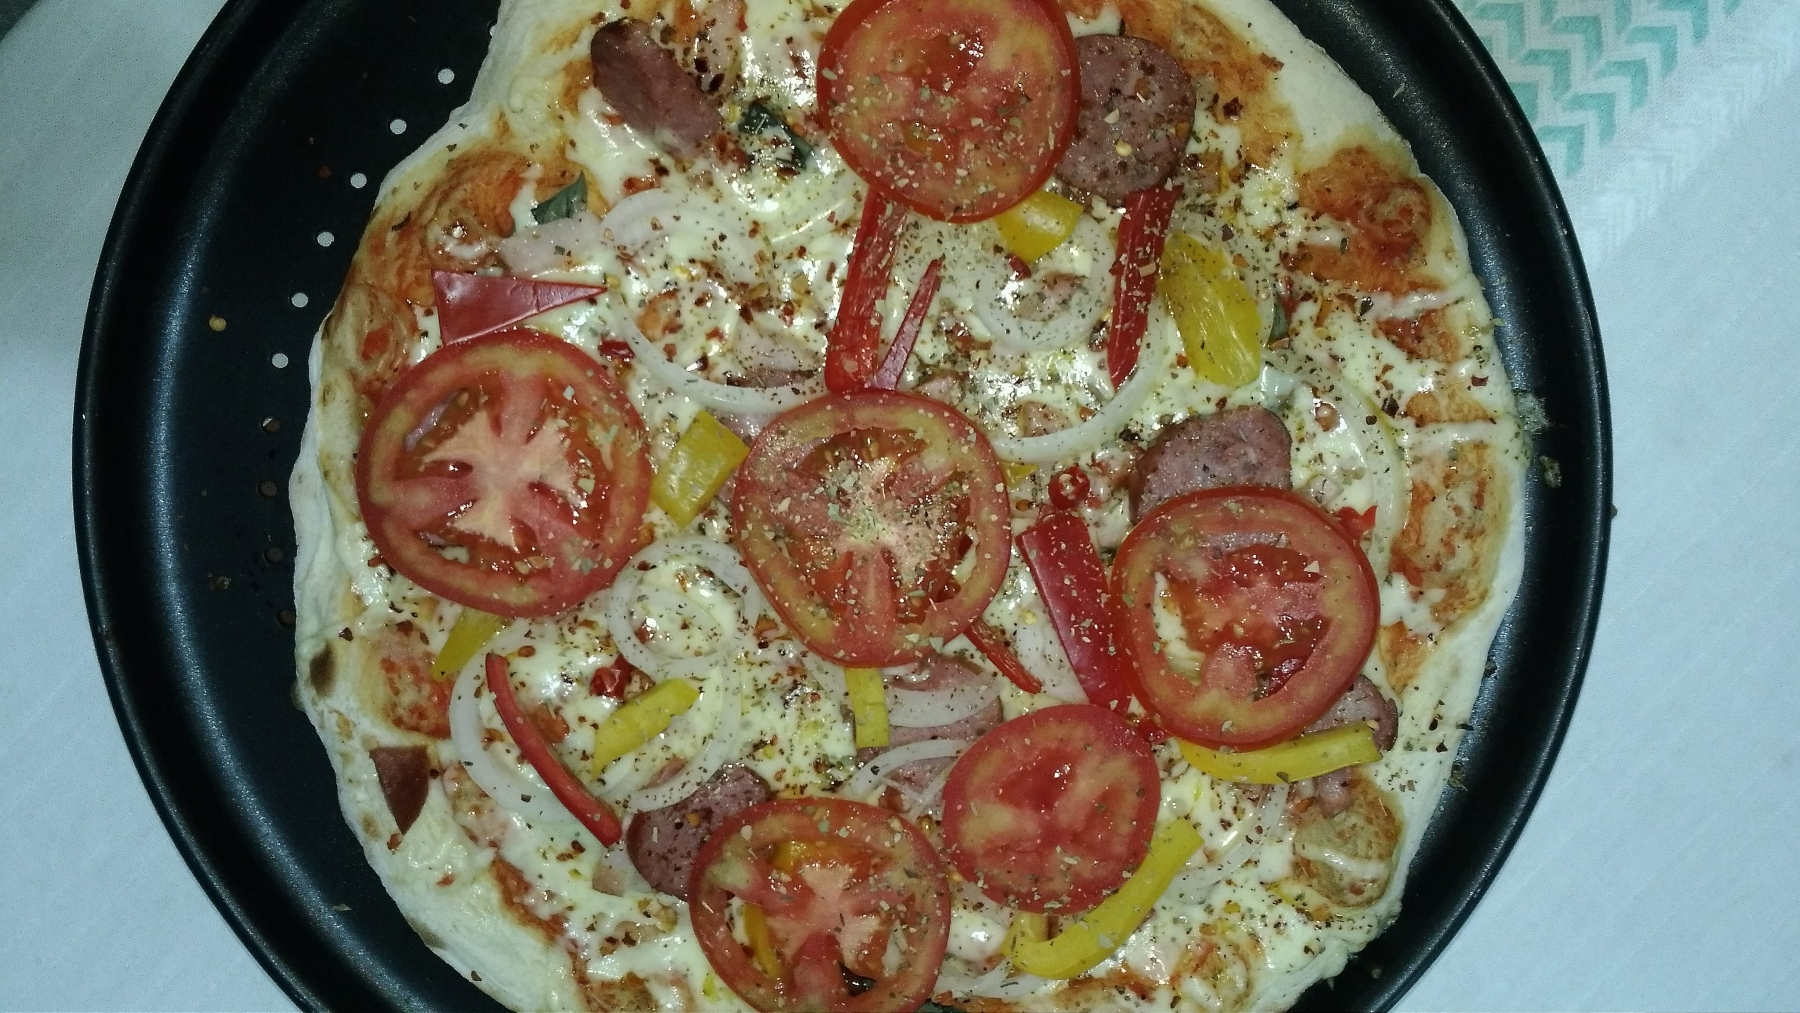 Pizza-gourmet-caseira-Blog-do-Feroli-7-e1554595978431